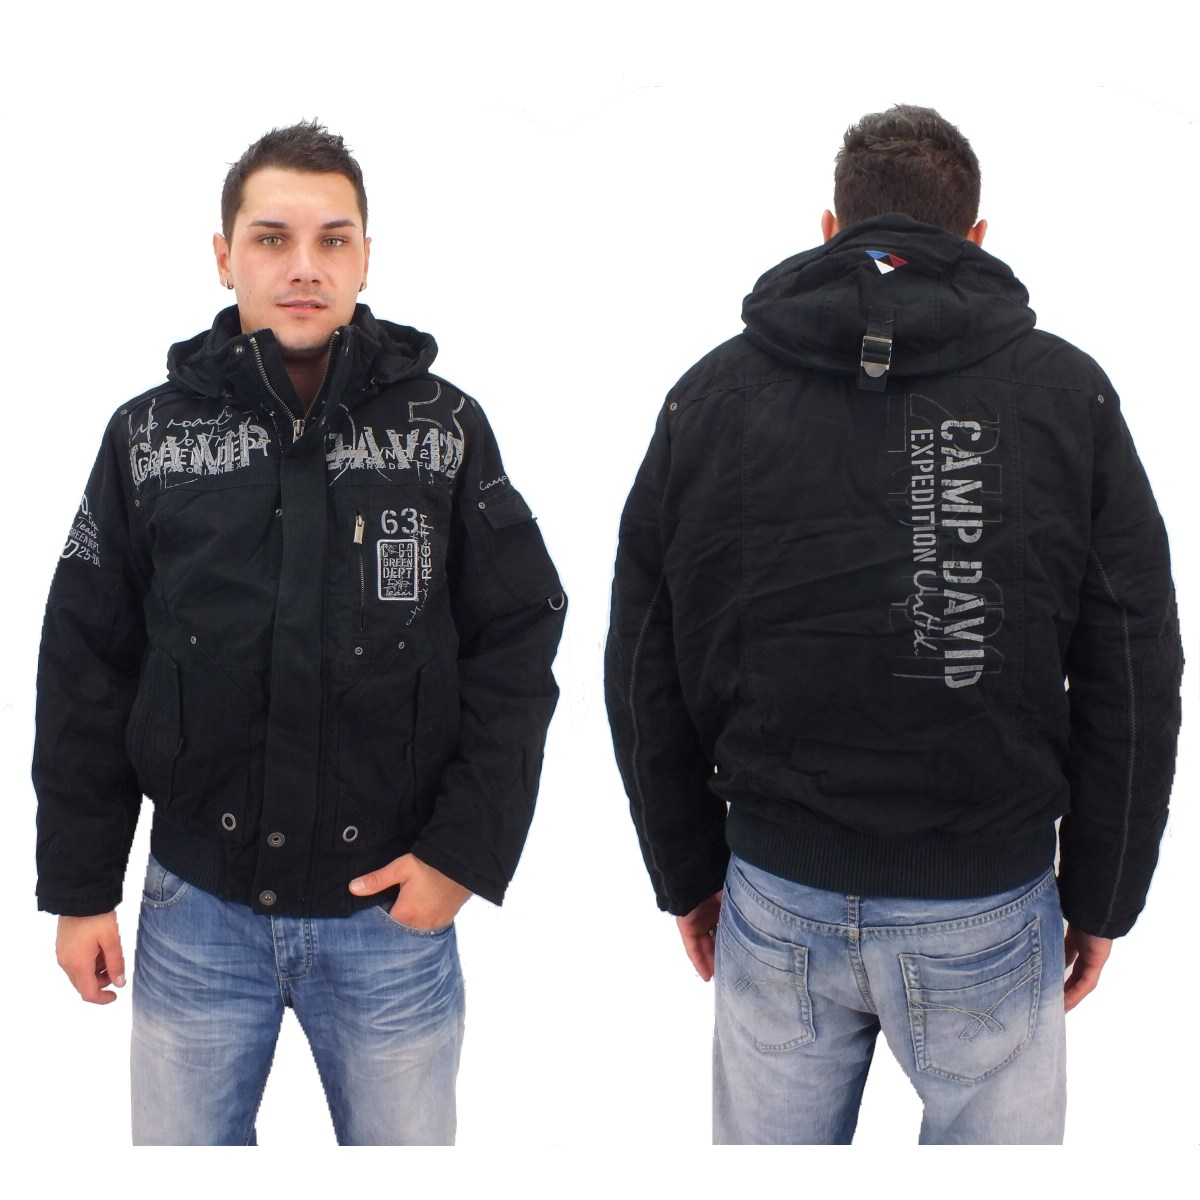 camp david patagonia jacket i cd jacke winterjacke herren schwarz. Black Bedroom Furniture Sets. Home Design Ideas